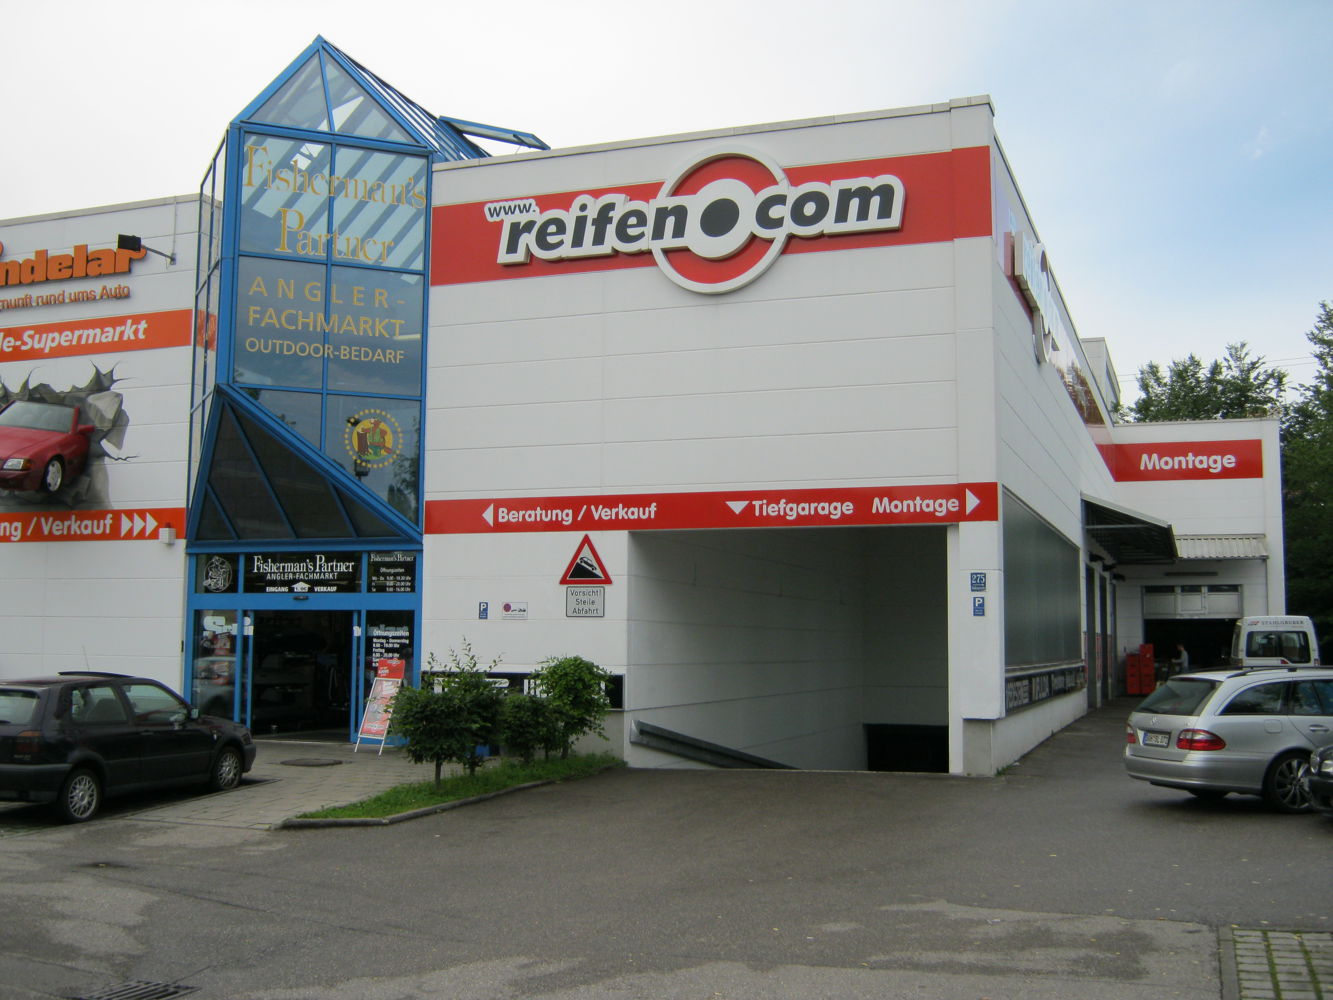 reifen.com-branch in Munich Aubing